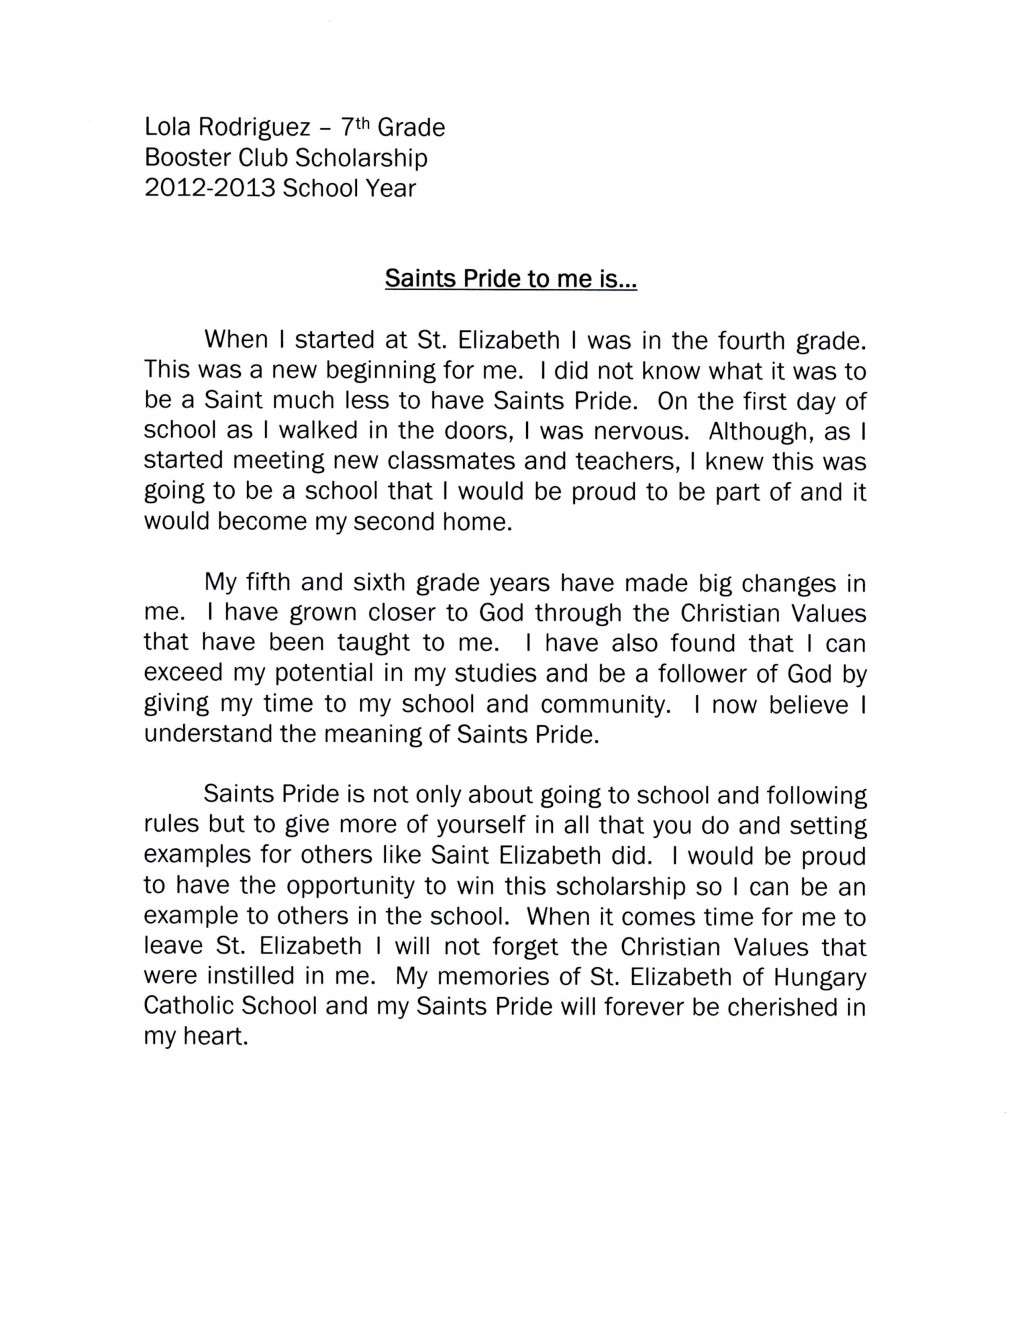 005 Lola Rodriguez Essay Example National Honors Unique Society Junior Honor Leadership Sample Large